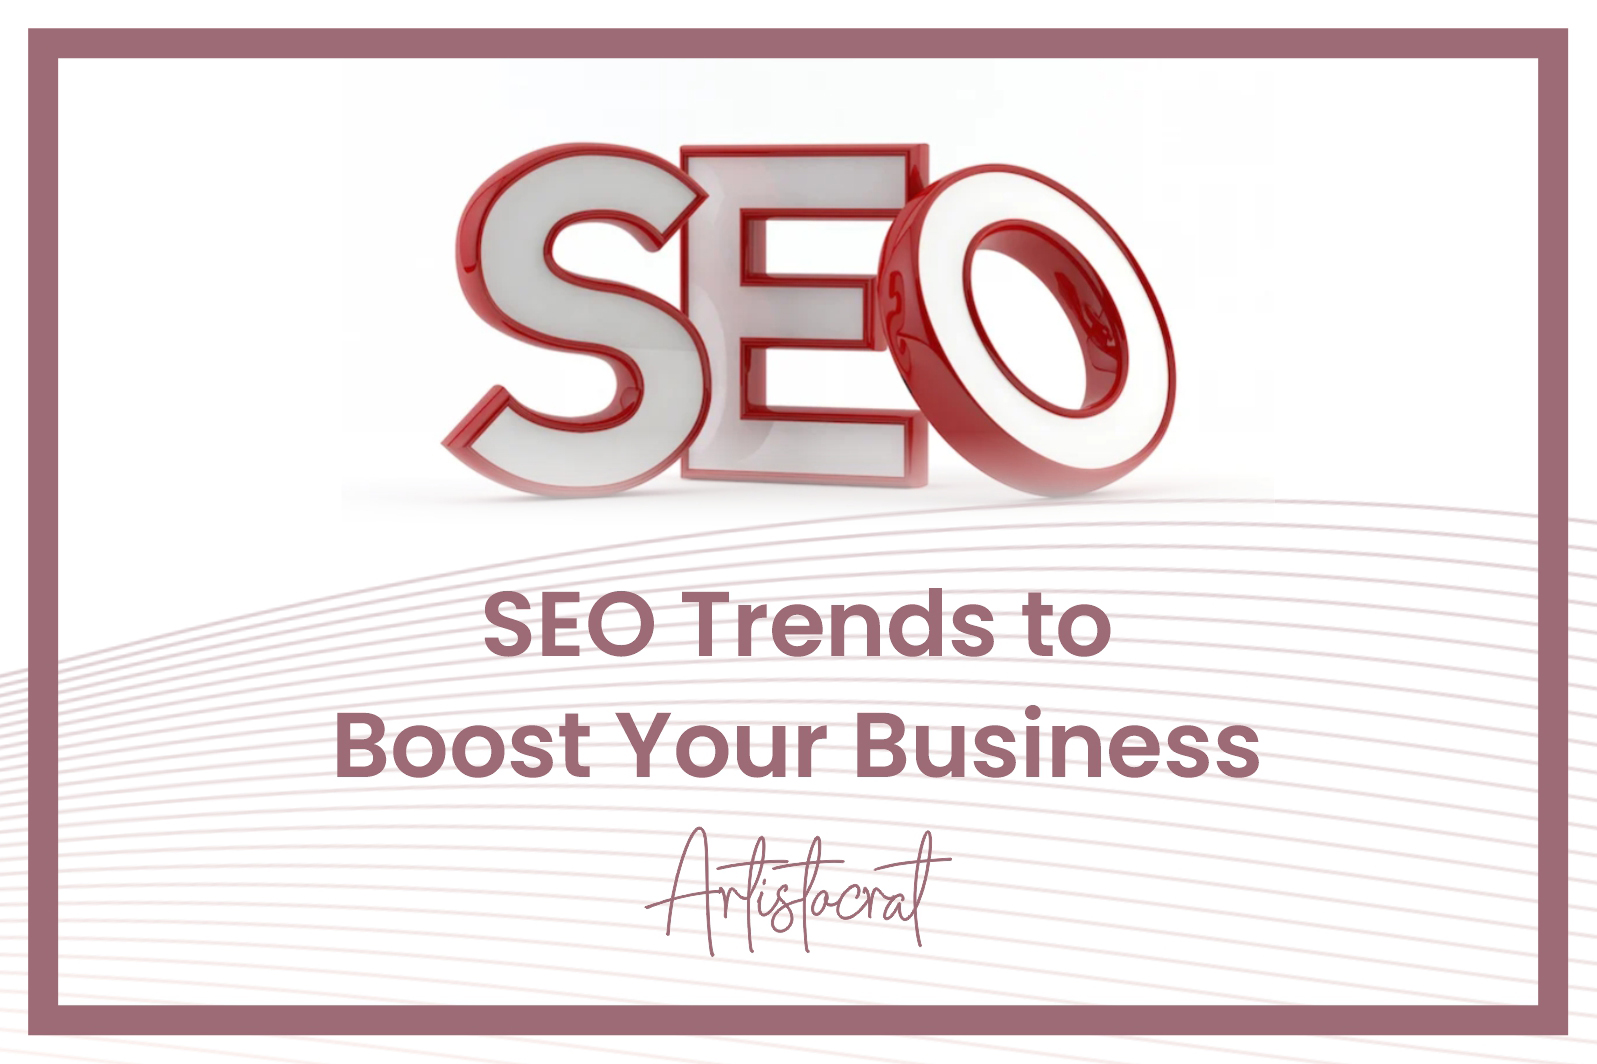 SEO-Trends-To-Boost-Your-Business